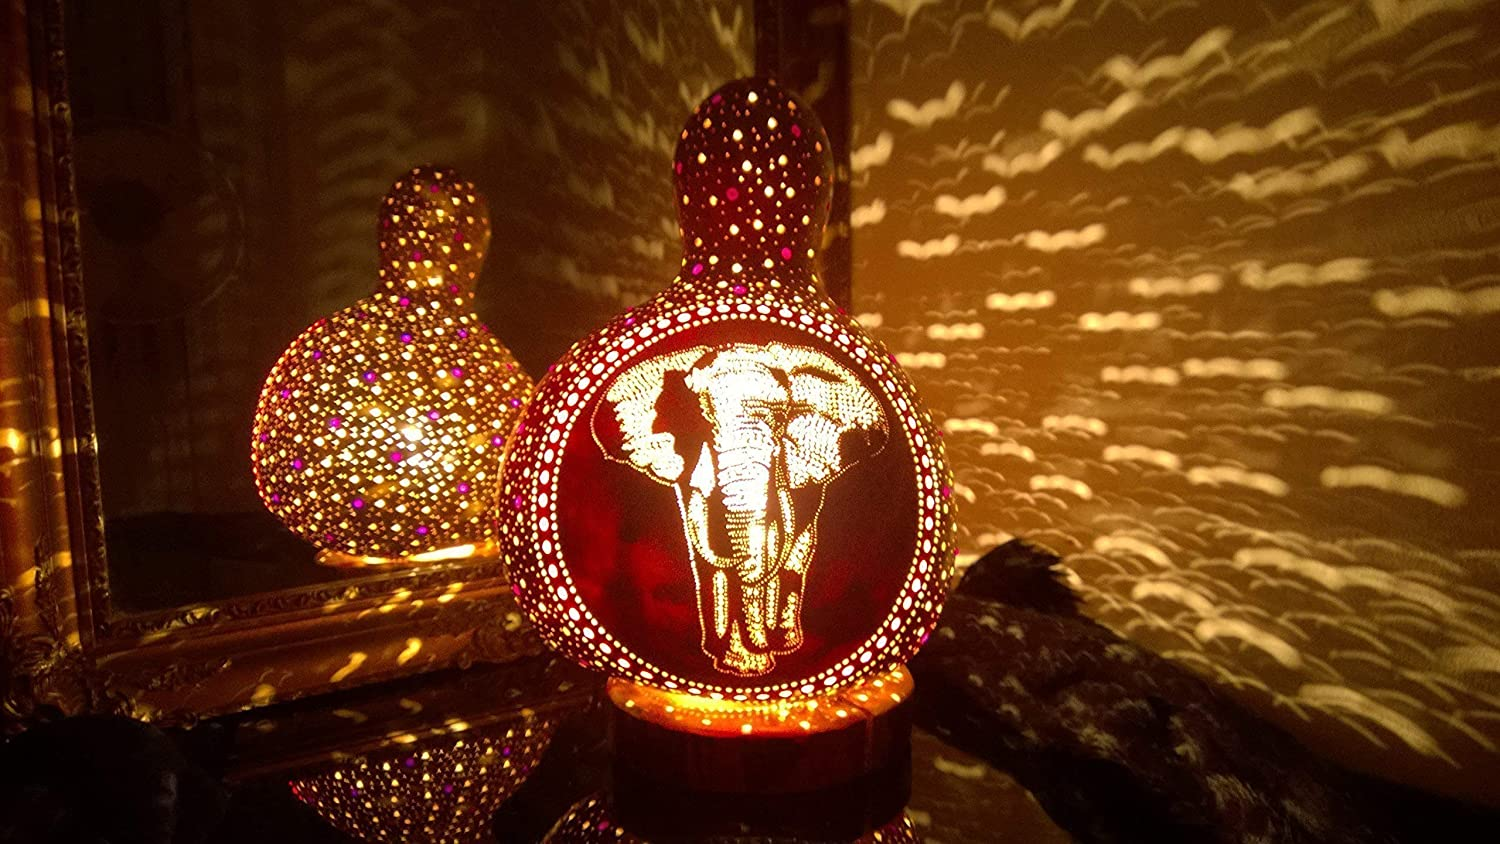 The Walk | Gourd Lamp Shade Night Light Unique Anniversary Birthday Gift Idea Elephant Item Home Decor Accessories